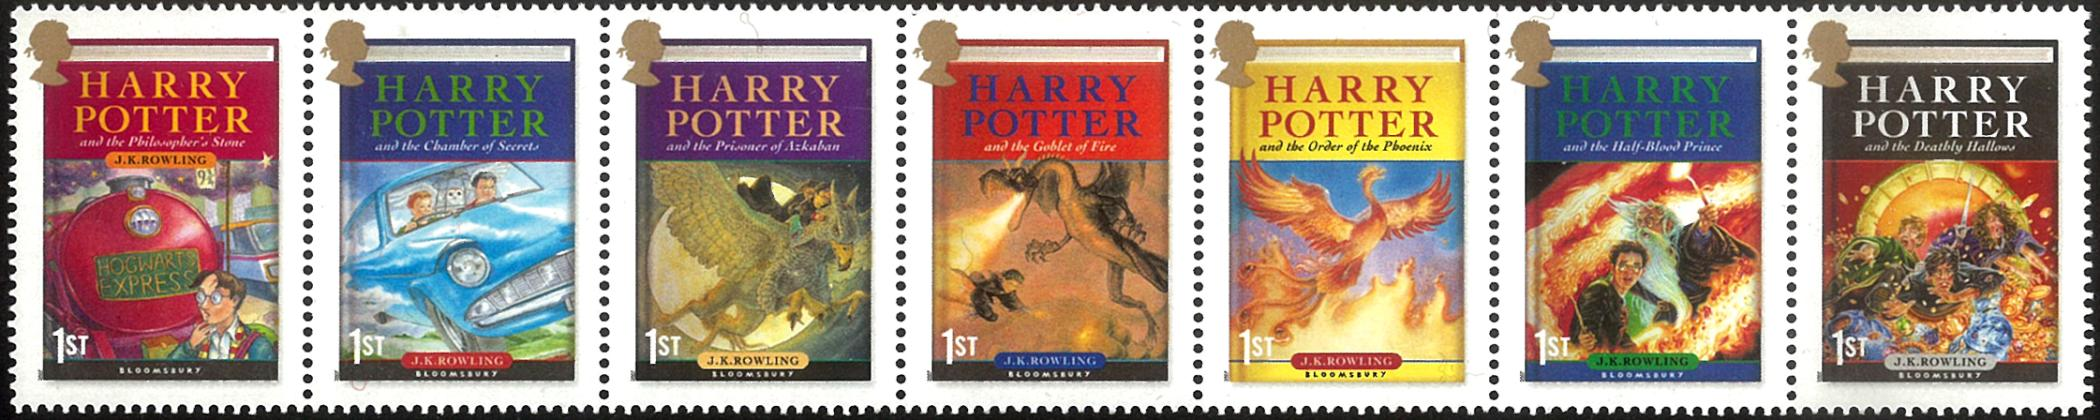 Harry Potter Wallpaper Stamps